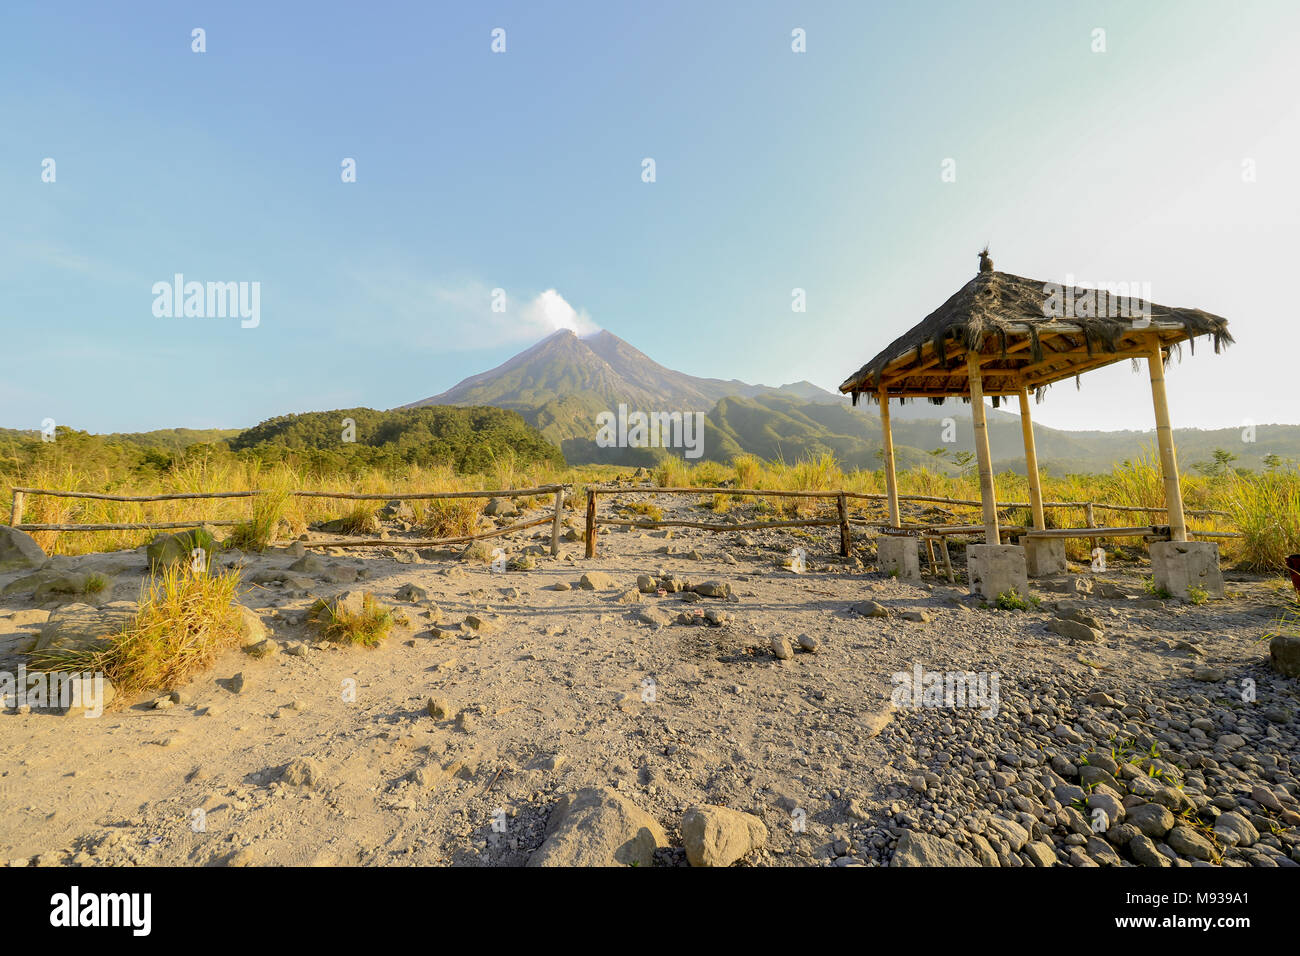 Mount Merapi, javanese, is an active stratovolcano located on the border between Central Java and Yogyakarta, Indonesia. - Stock Image